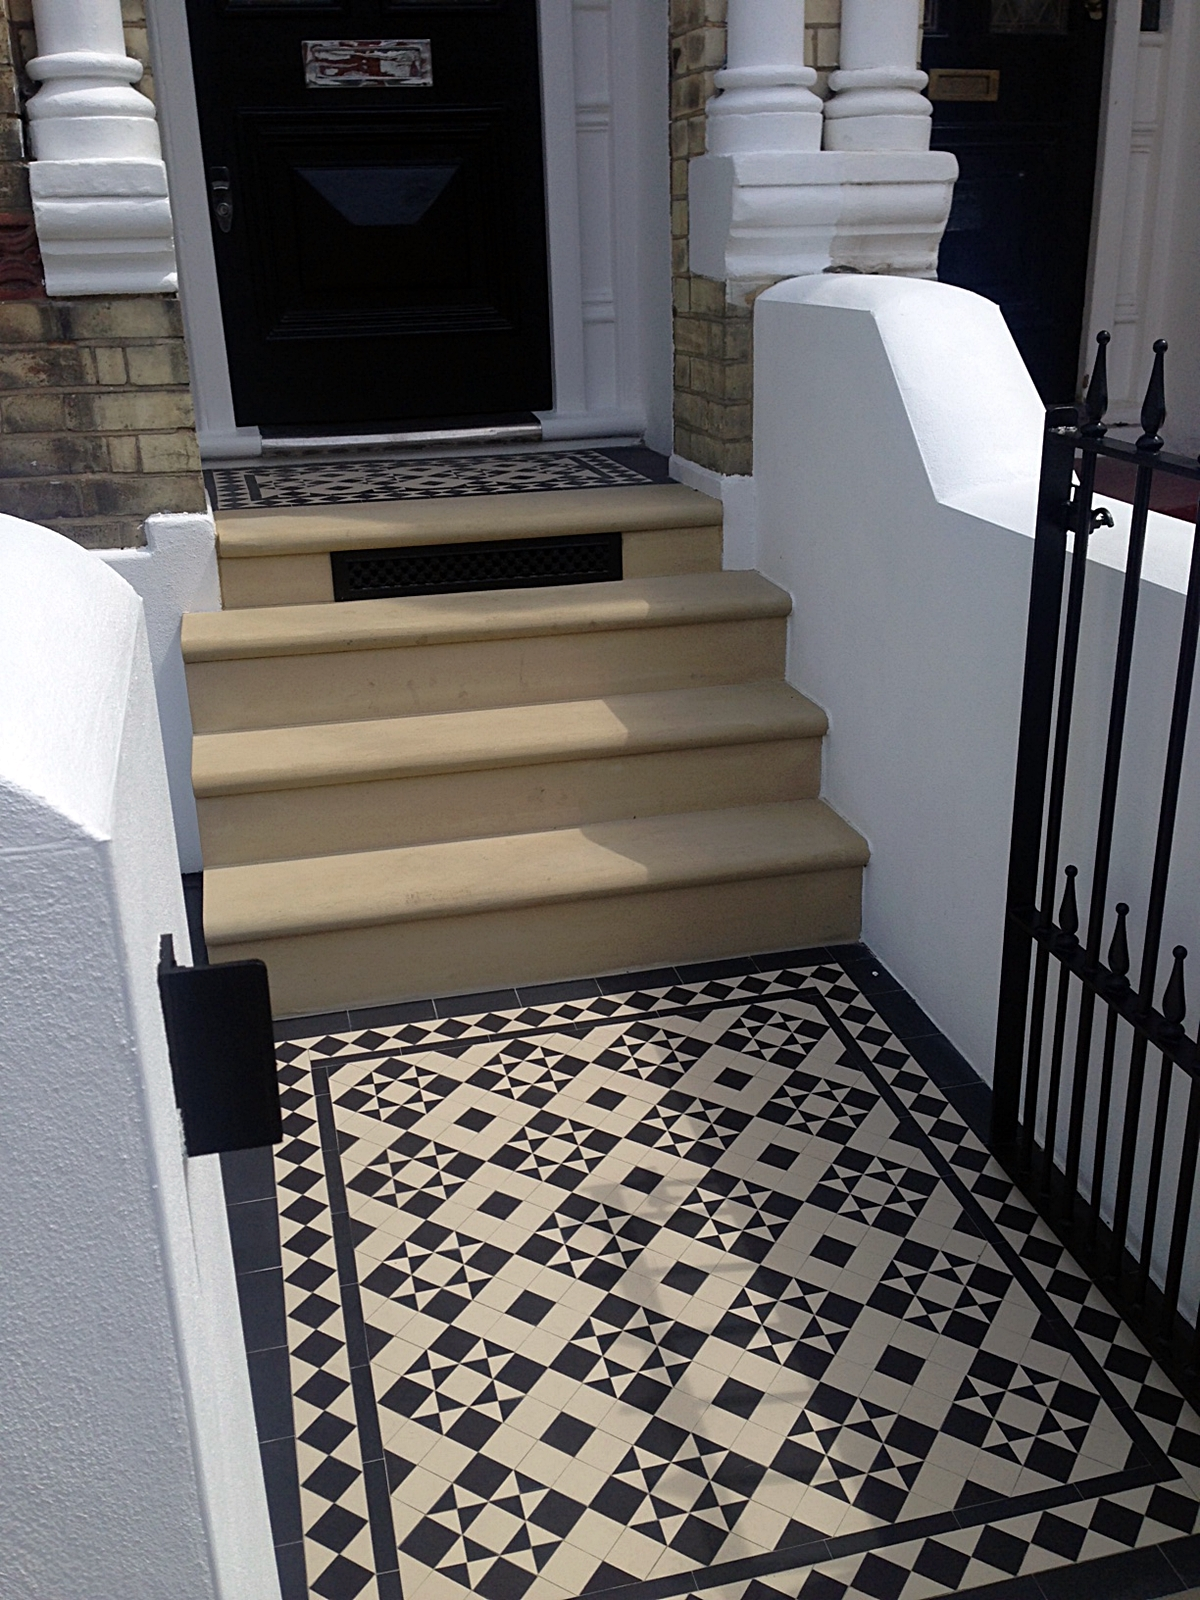 bull nose york stone steps daisy grate victorian mosaic tile path wrought iron rail and gate clapham london rendered painted garden wall